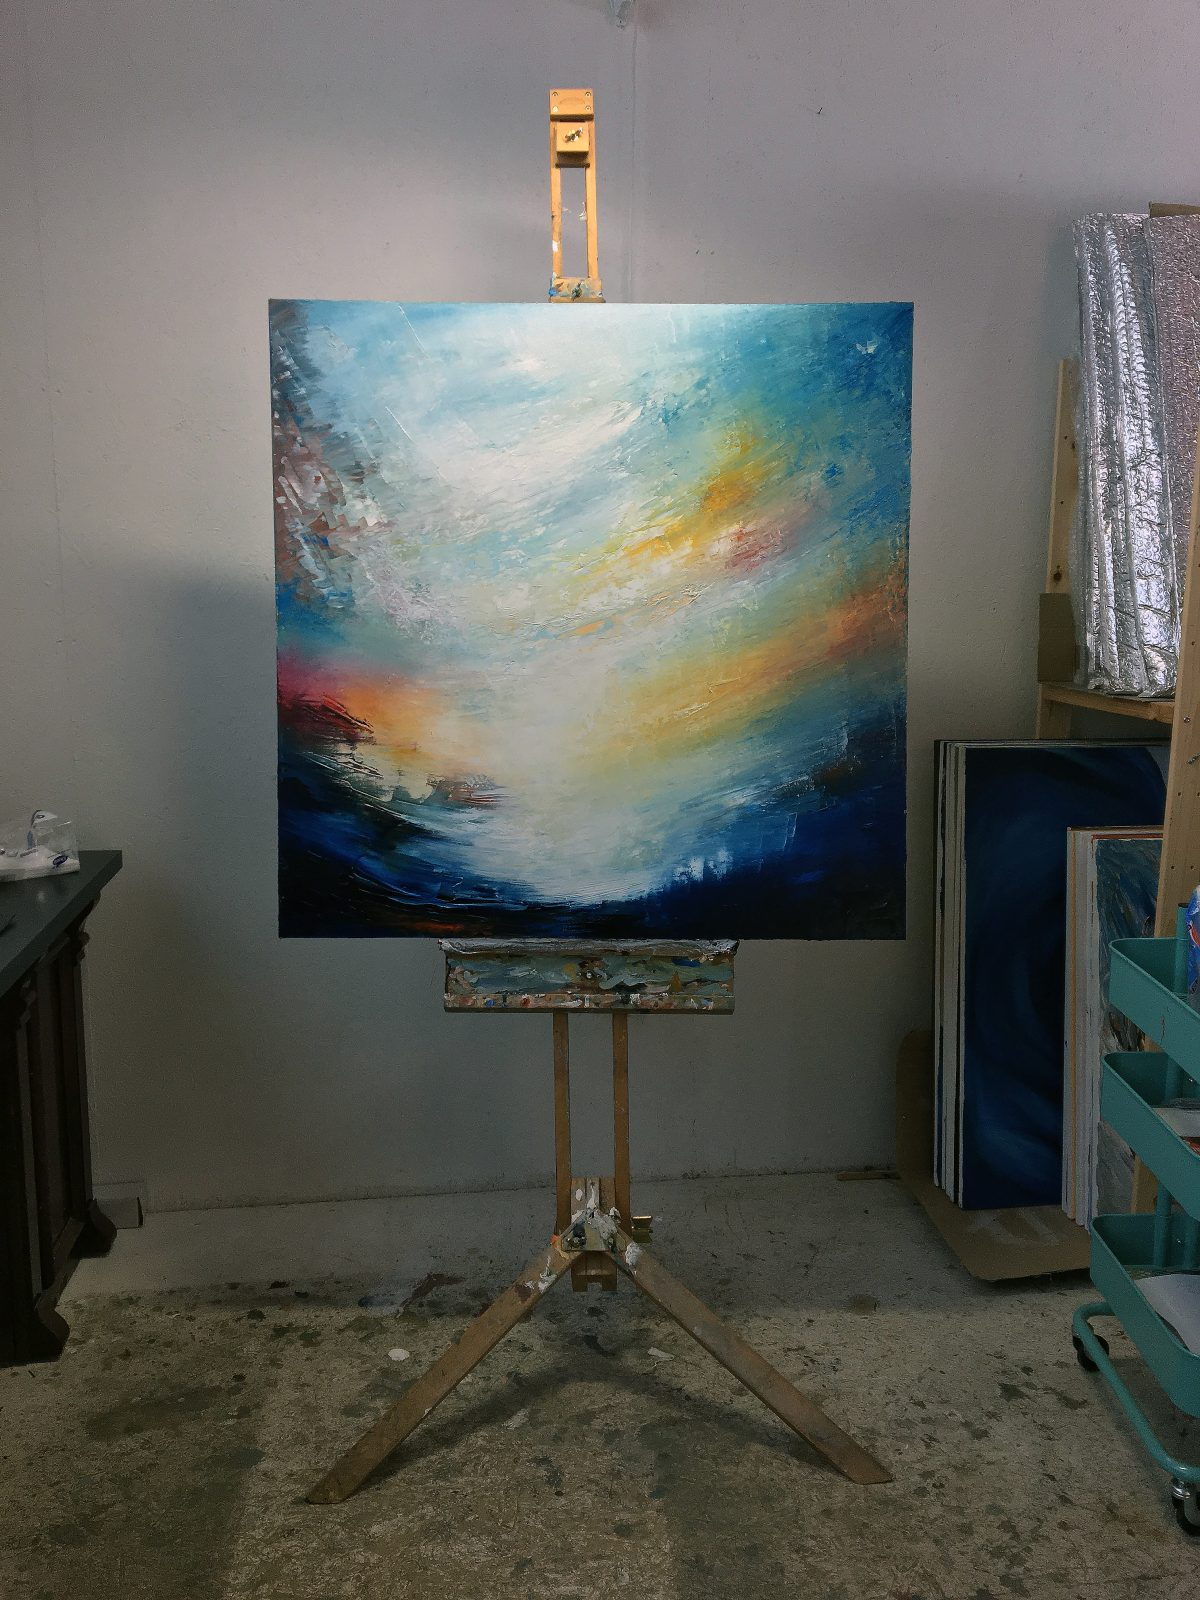 Aetheria - on the easel